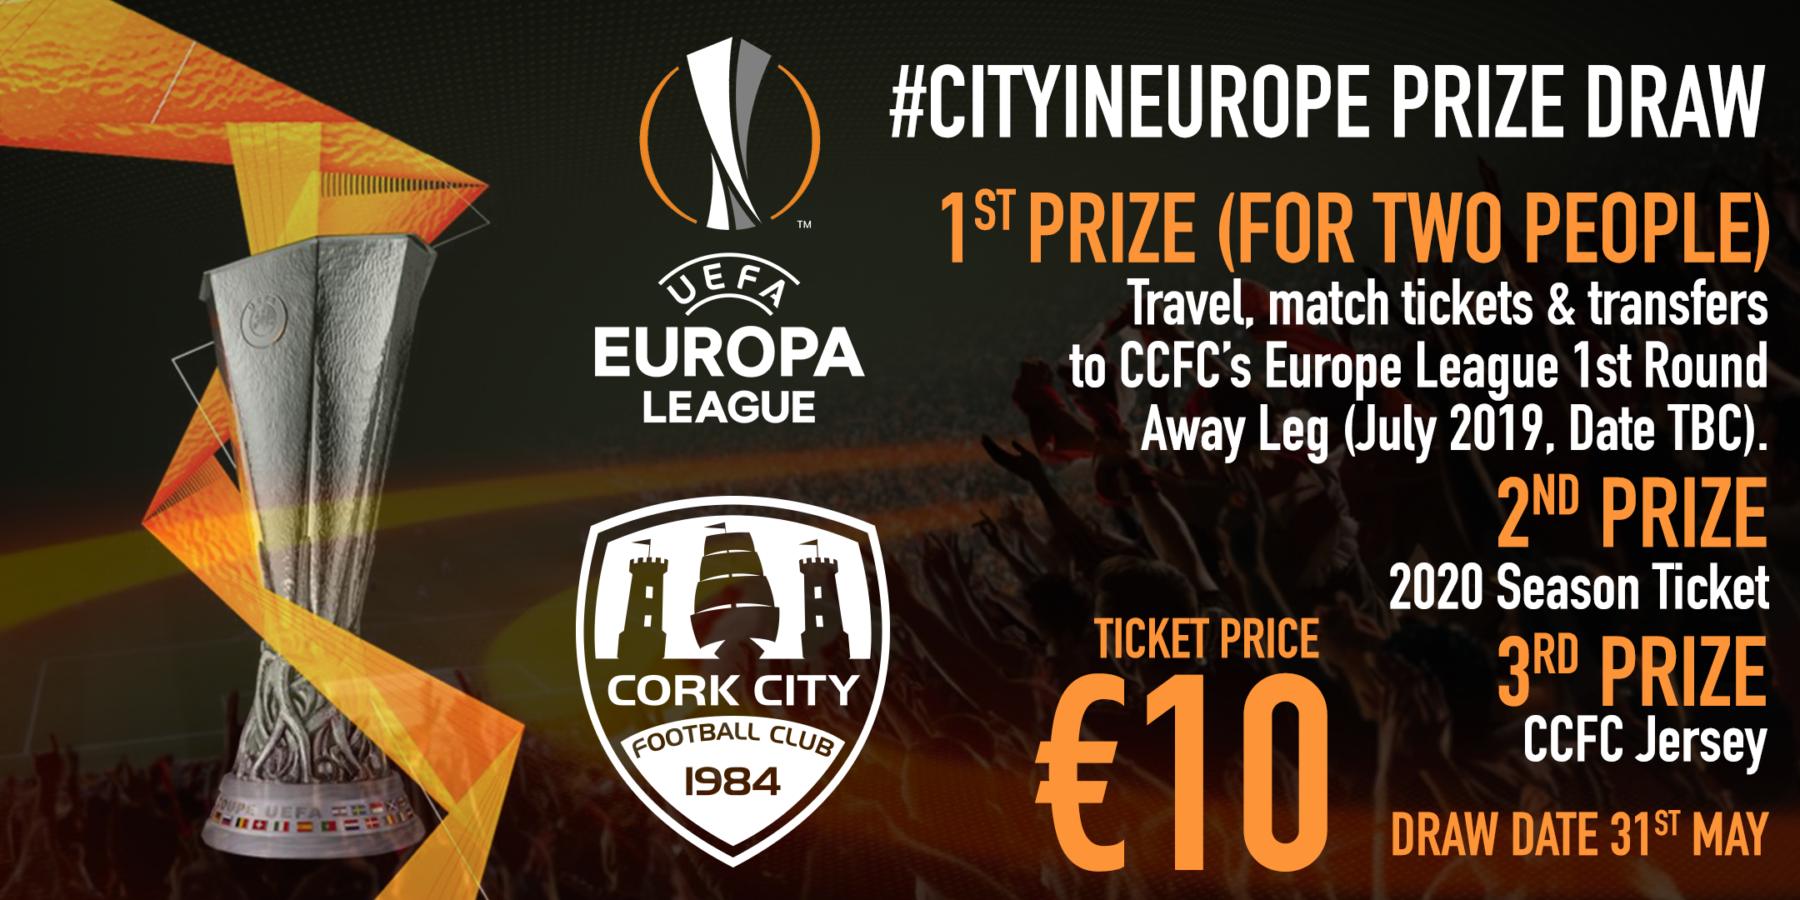 Two weeks left to enter! Win a trip to the Europa League!